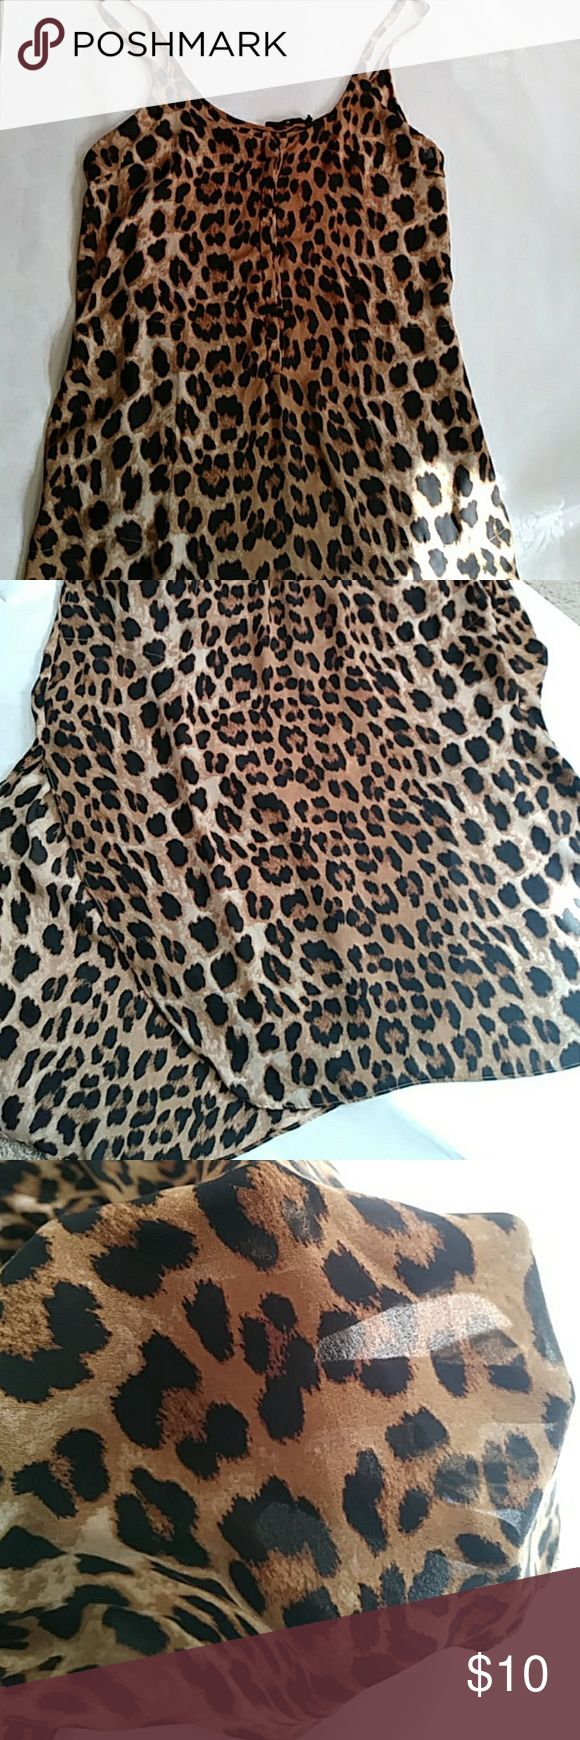 Sheer Cheetah Print Dress/Bathing Suit Cover Olivaceous brand sheer cheetah print dress or bathing suit cover.  Fits just below knee length with slits up both sides and small side pockets at hip.  Speghetti strap with button up top Olivaceous Swim Coverups